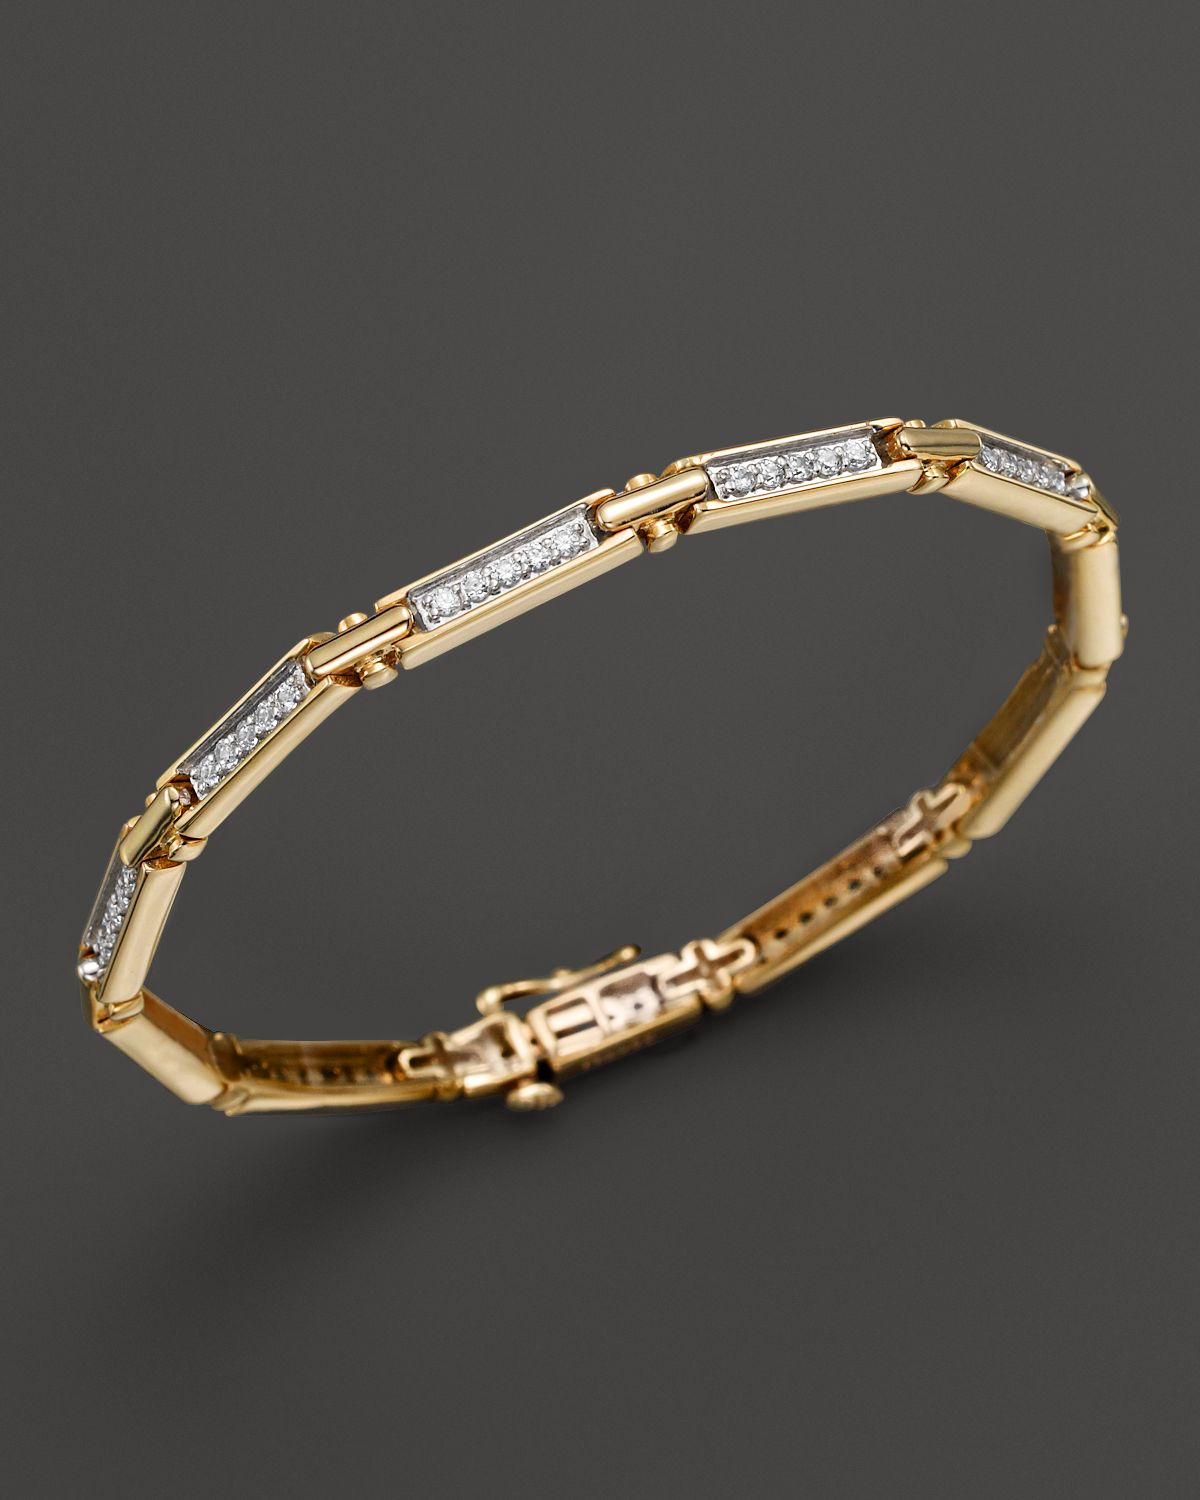 Diamond Rectangular Link Bracelet In 14 K Yellow Gold, 1 Ct. T.W.   100 Percents Exclusive by Bloomingdale's